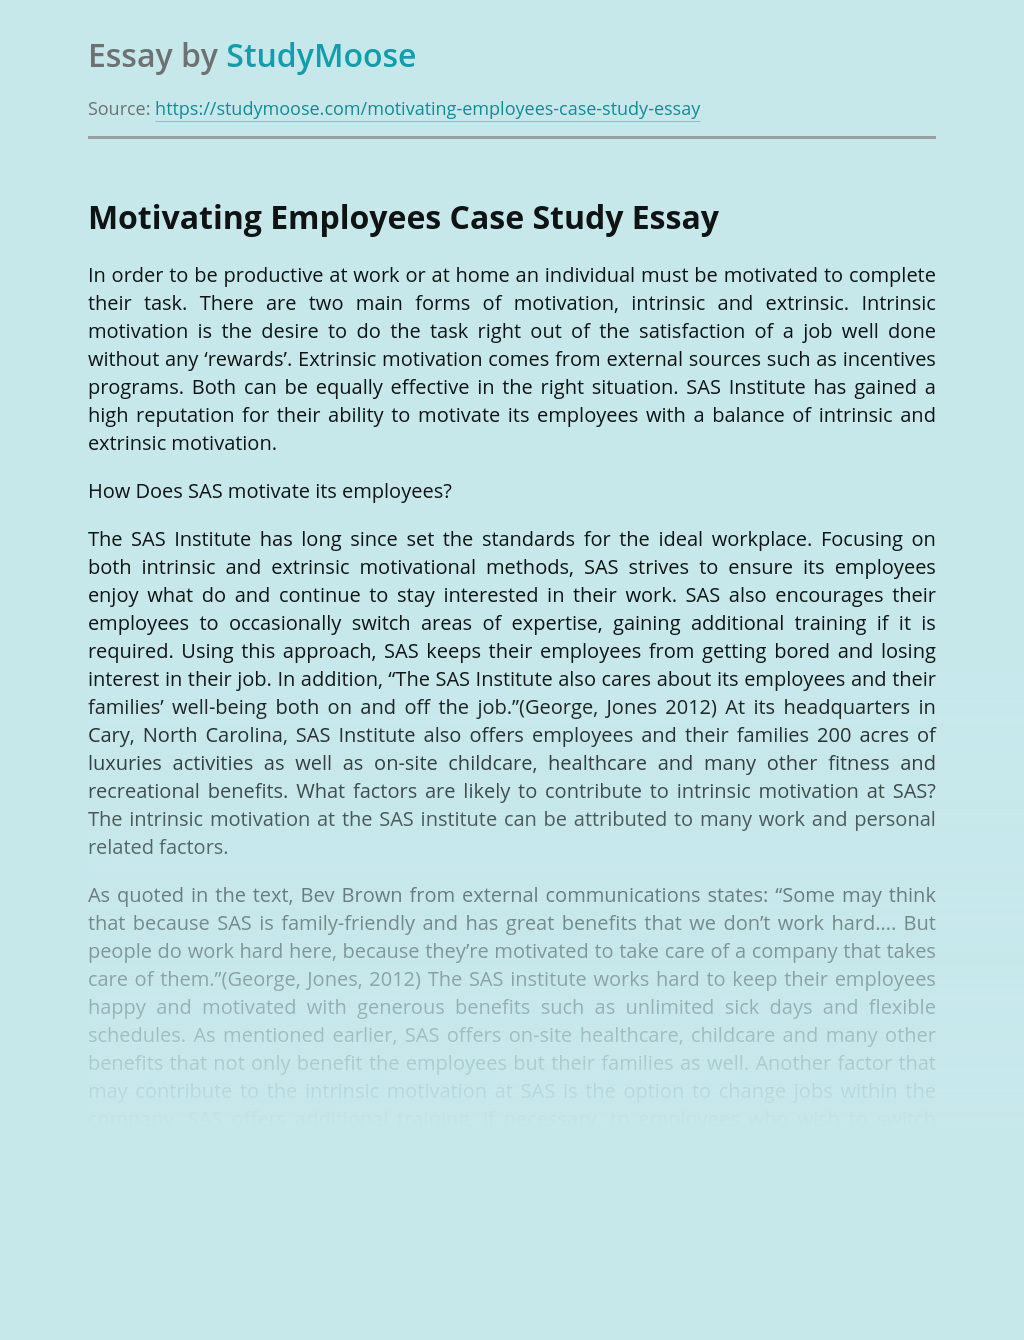 Motivating Employees Case Study